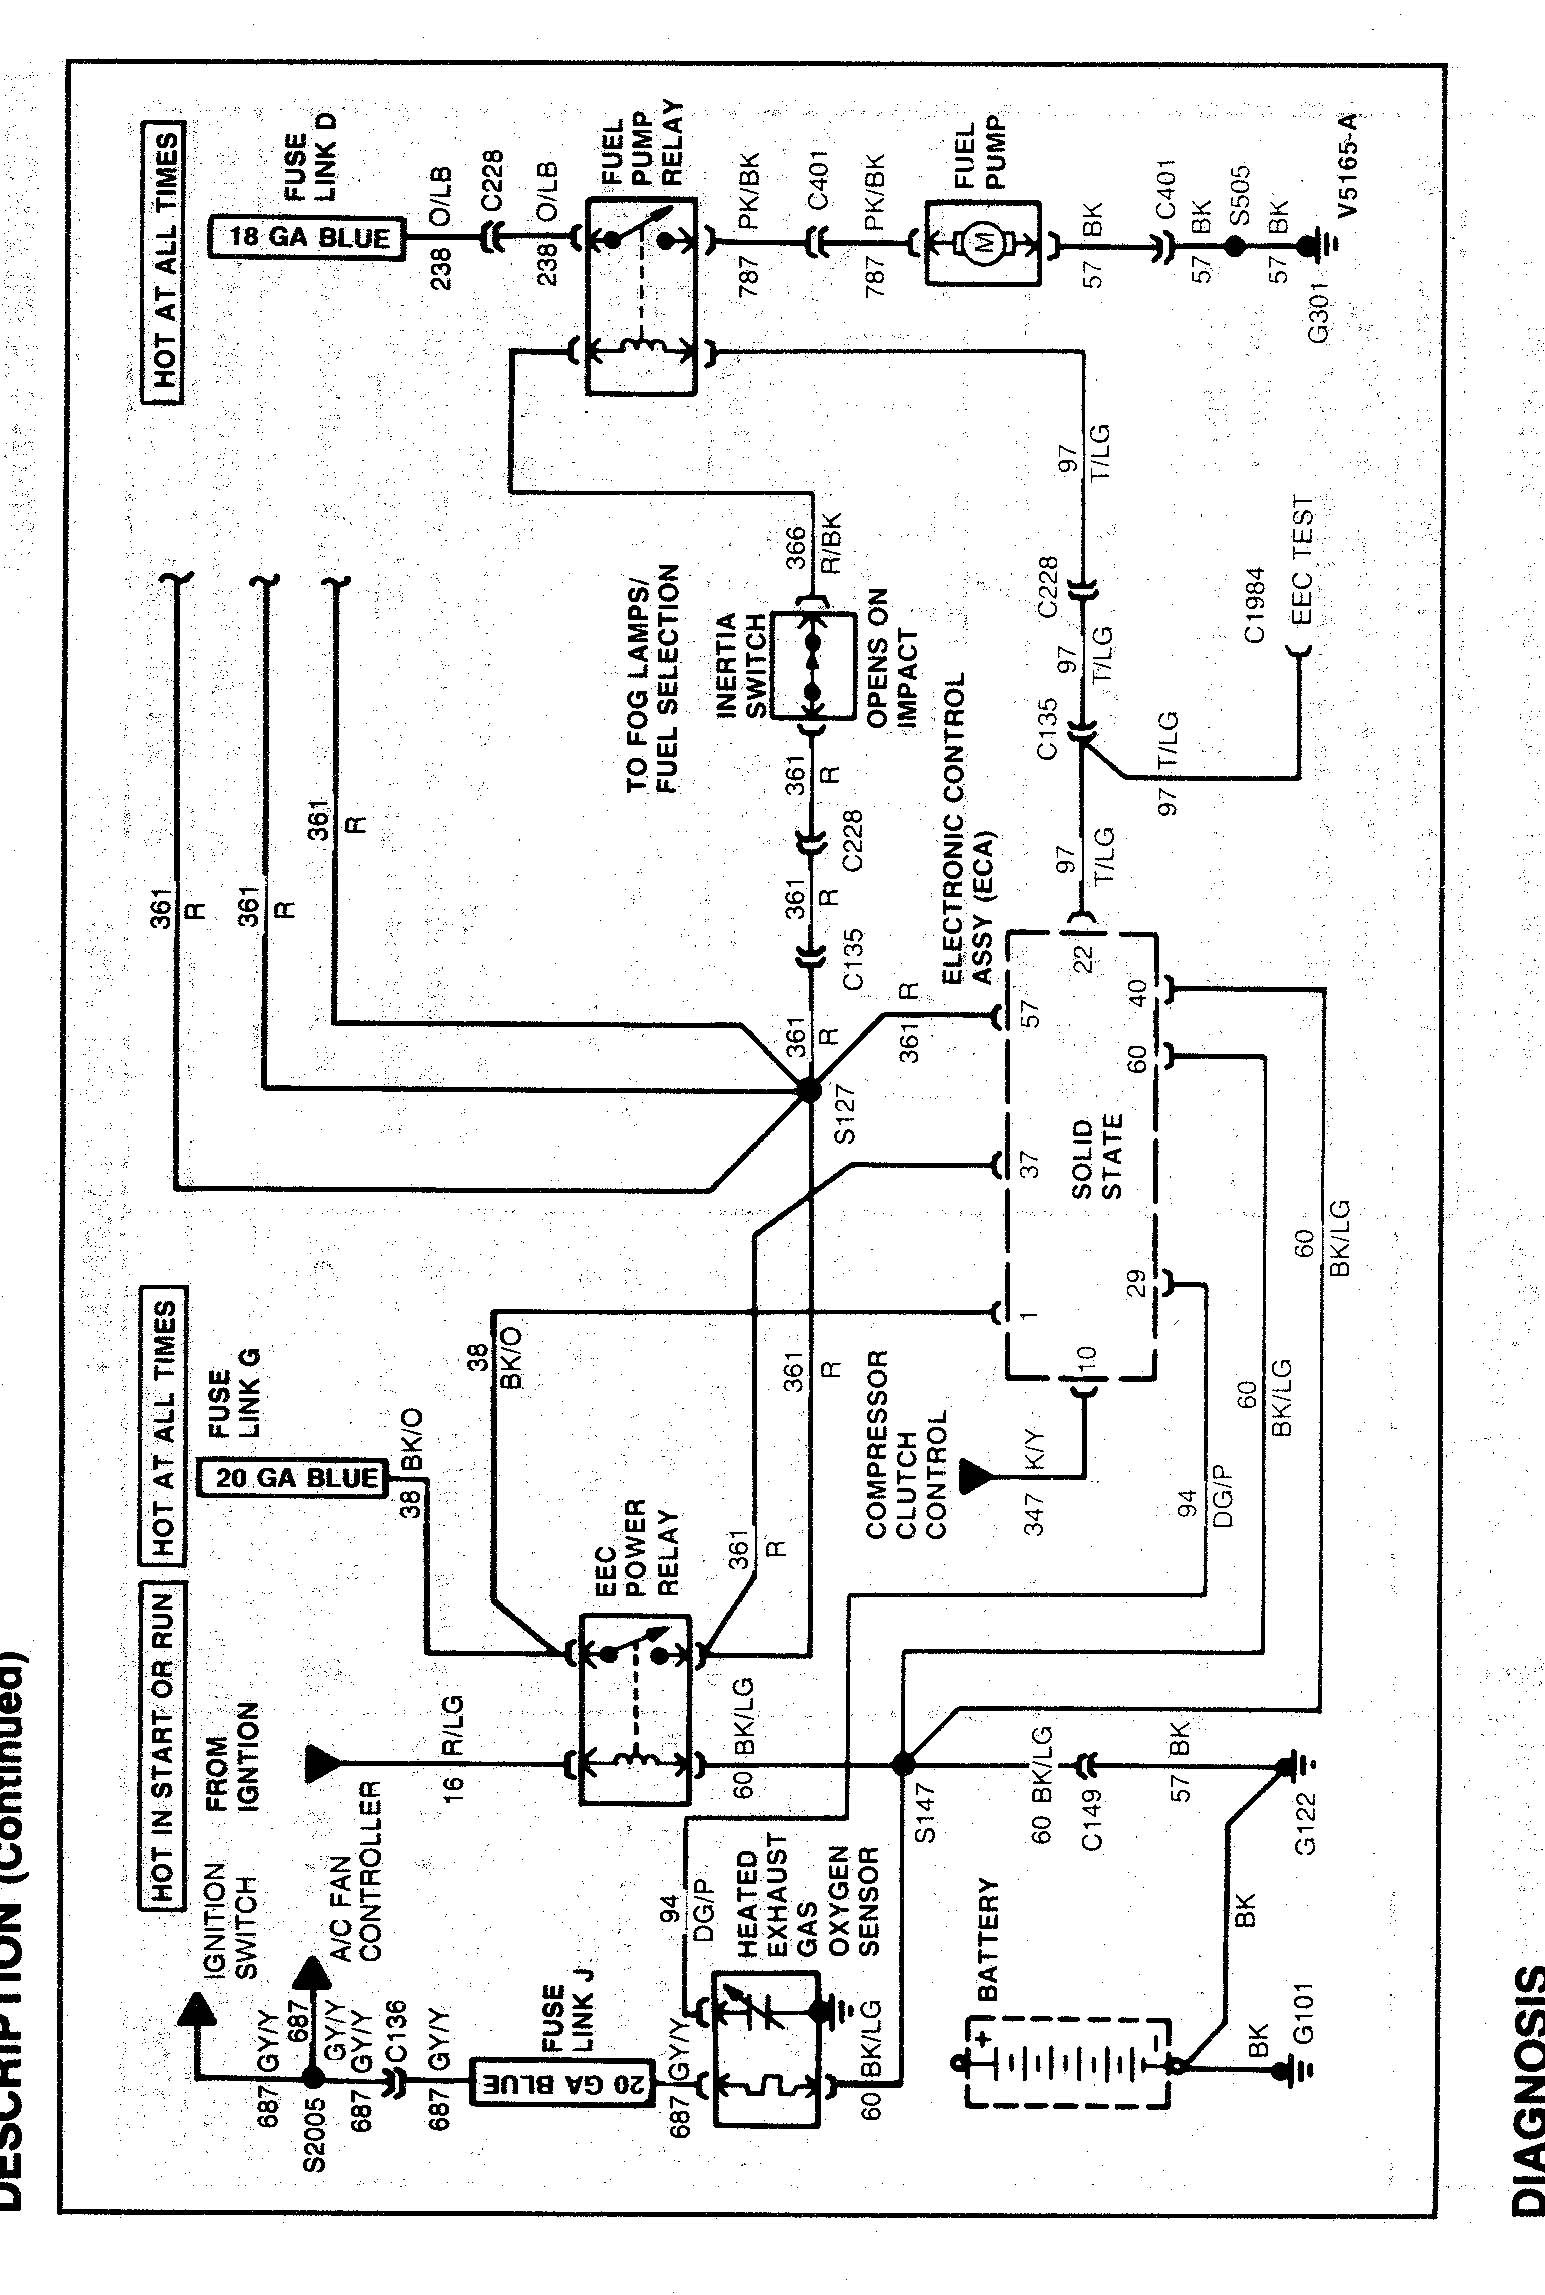 1993 f150 wiring diagram